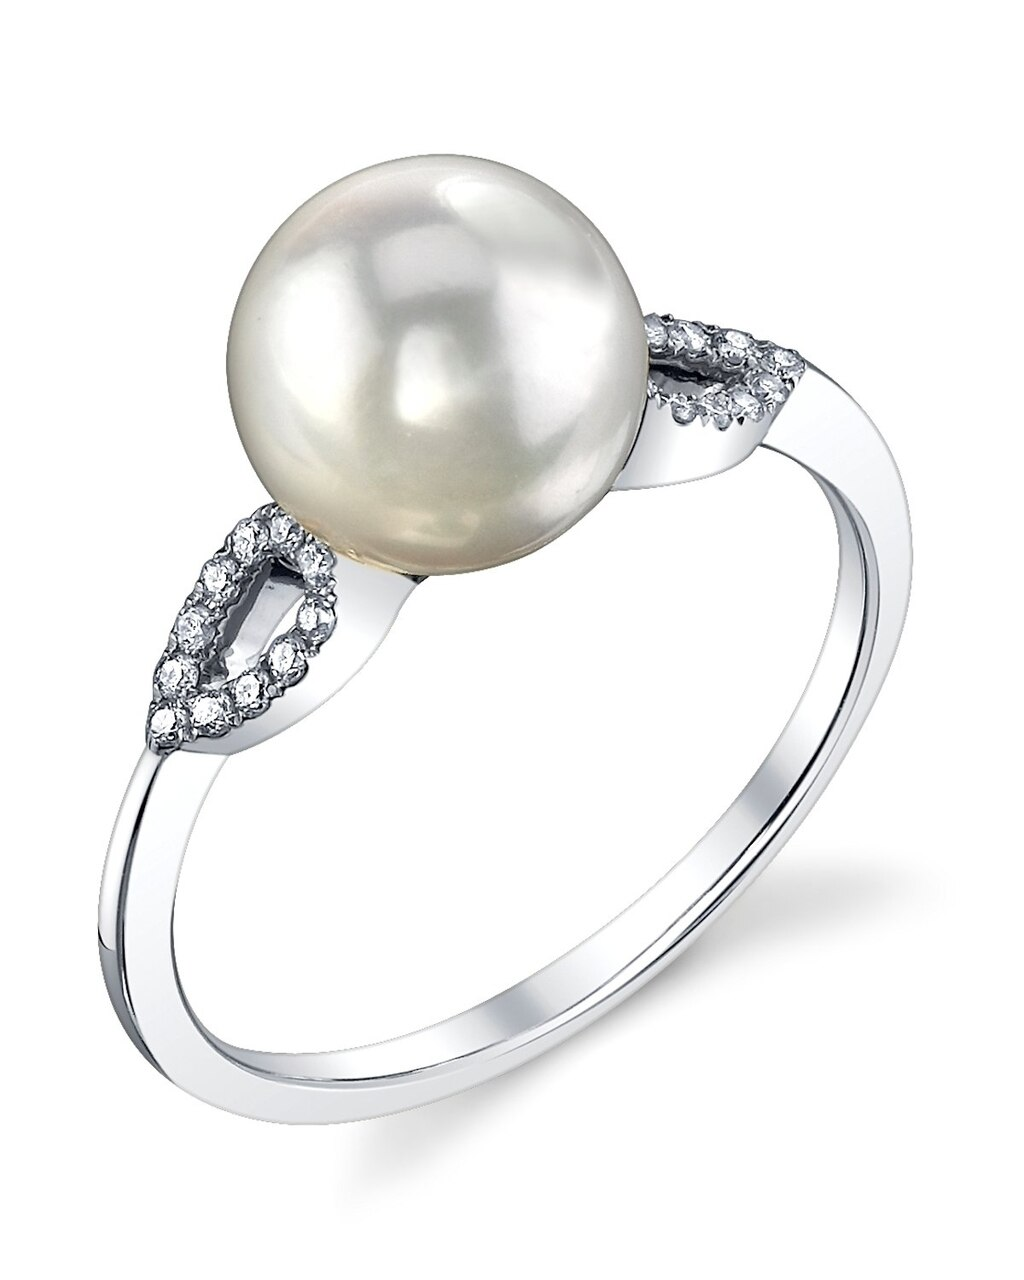 This exquisite ring features an 8.0-9.0mm White South Sea pearl, handpicked for its luminous luster